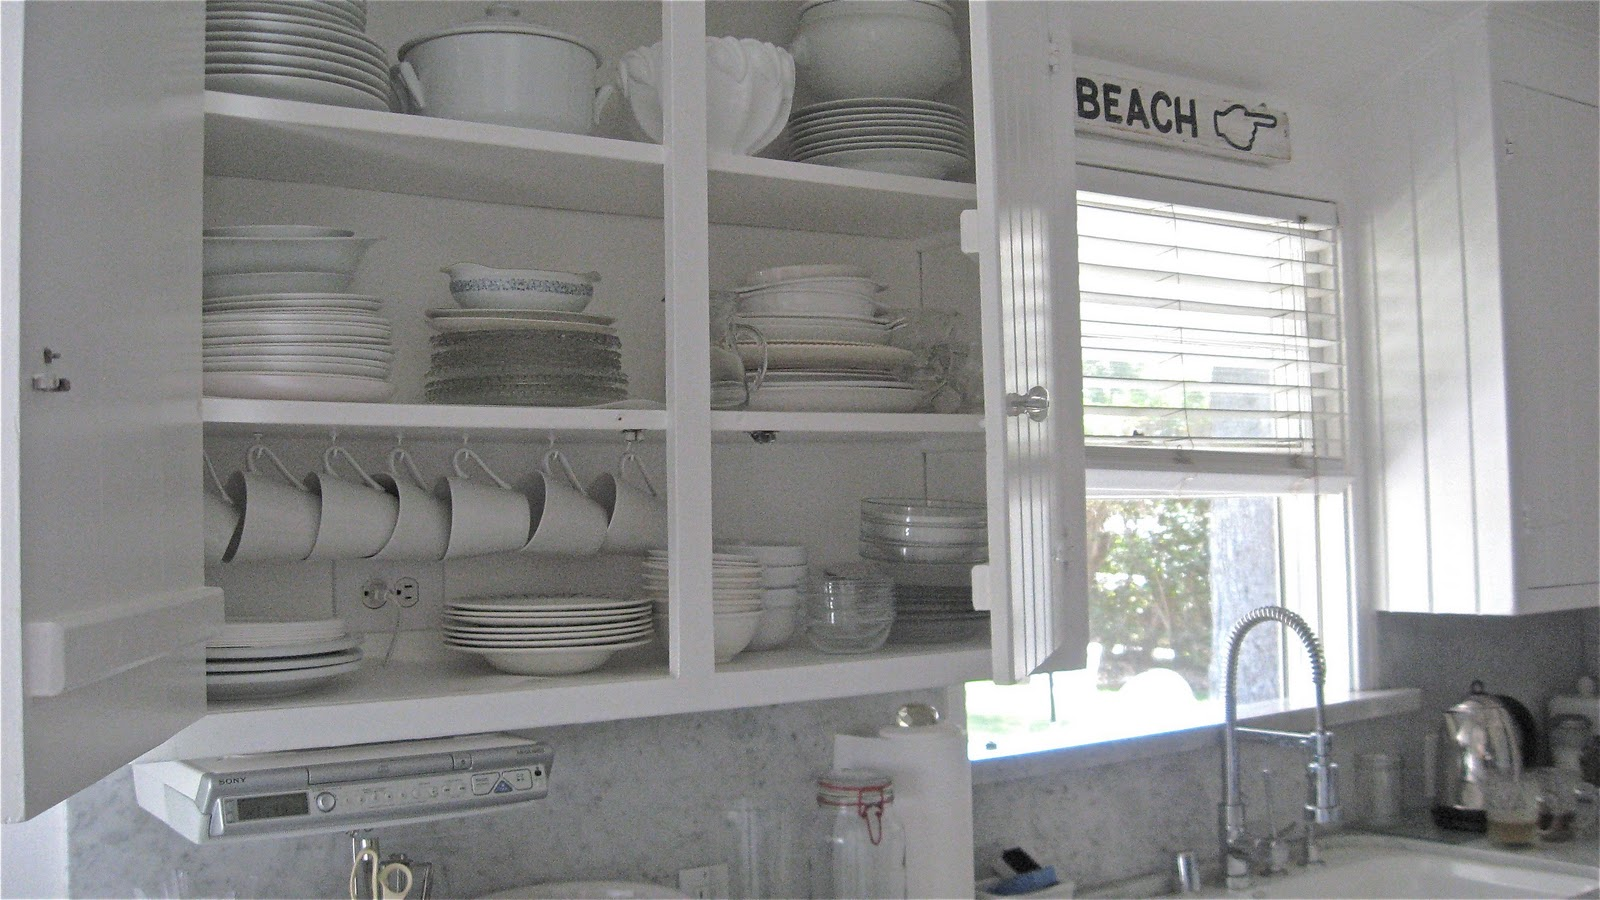 Chandeliers at Beach House 27: Beach House Kitchen & PEACE on the - White Beach House Kitchen